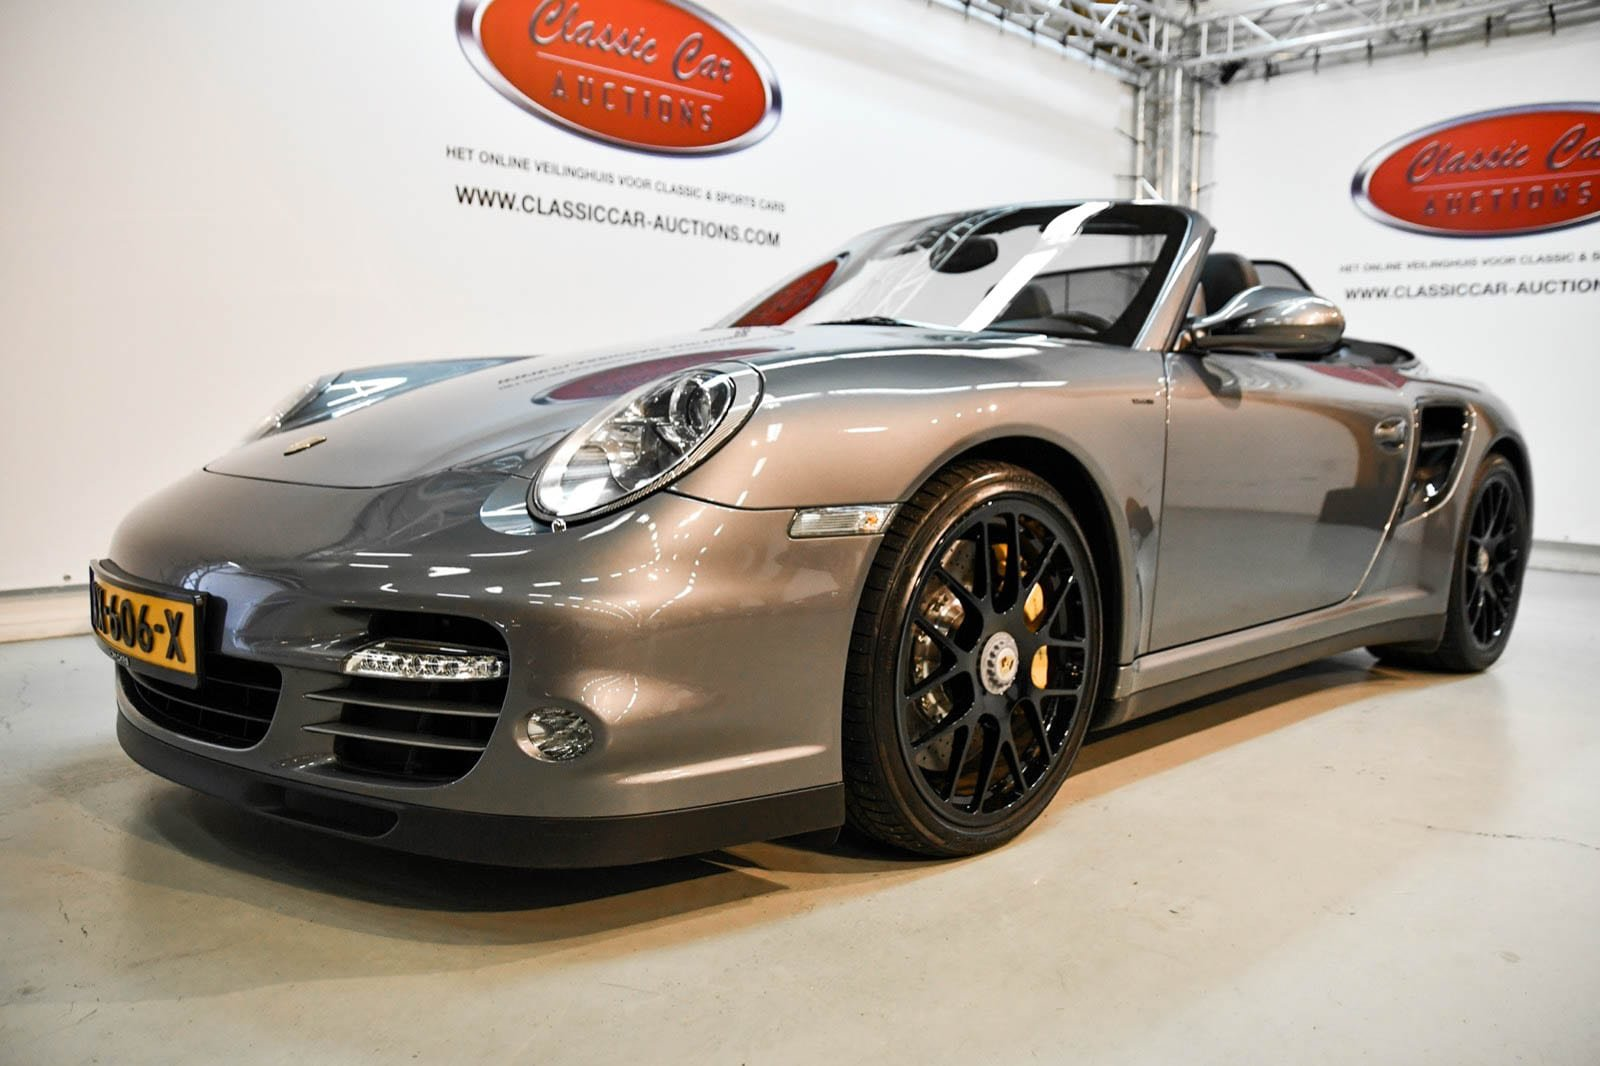 Porsche 911 type 997 2 turbo 2010 For Sale by Auction (picture 1 of 6)